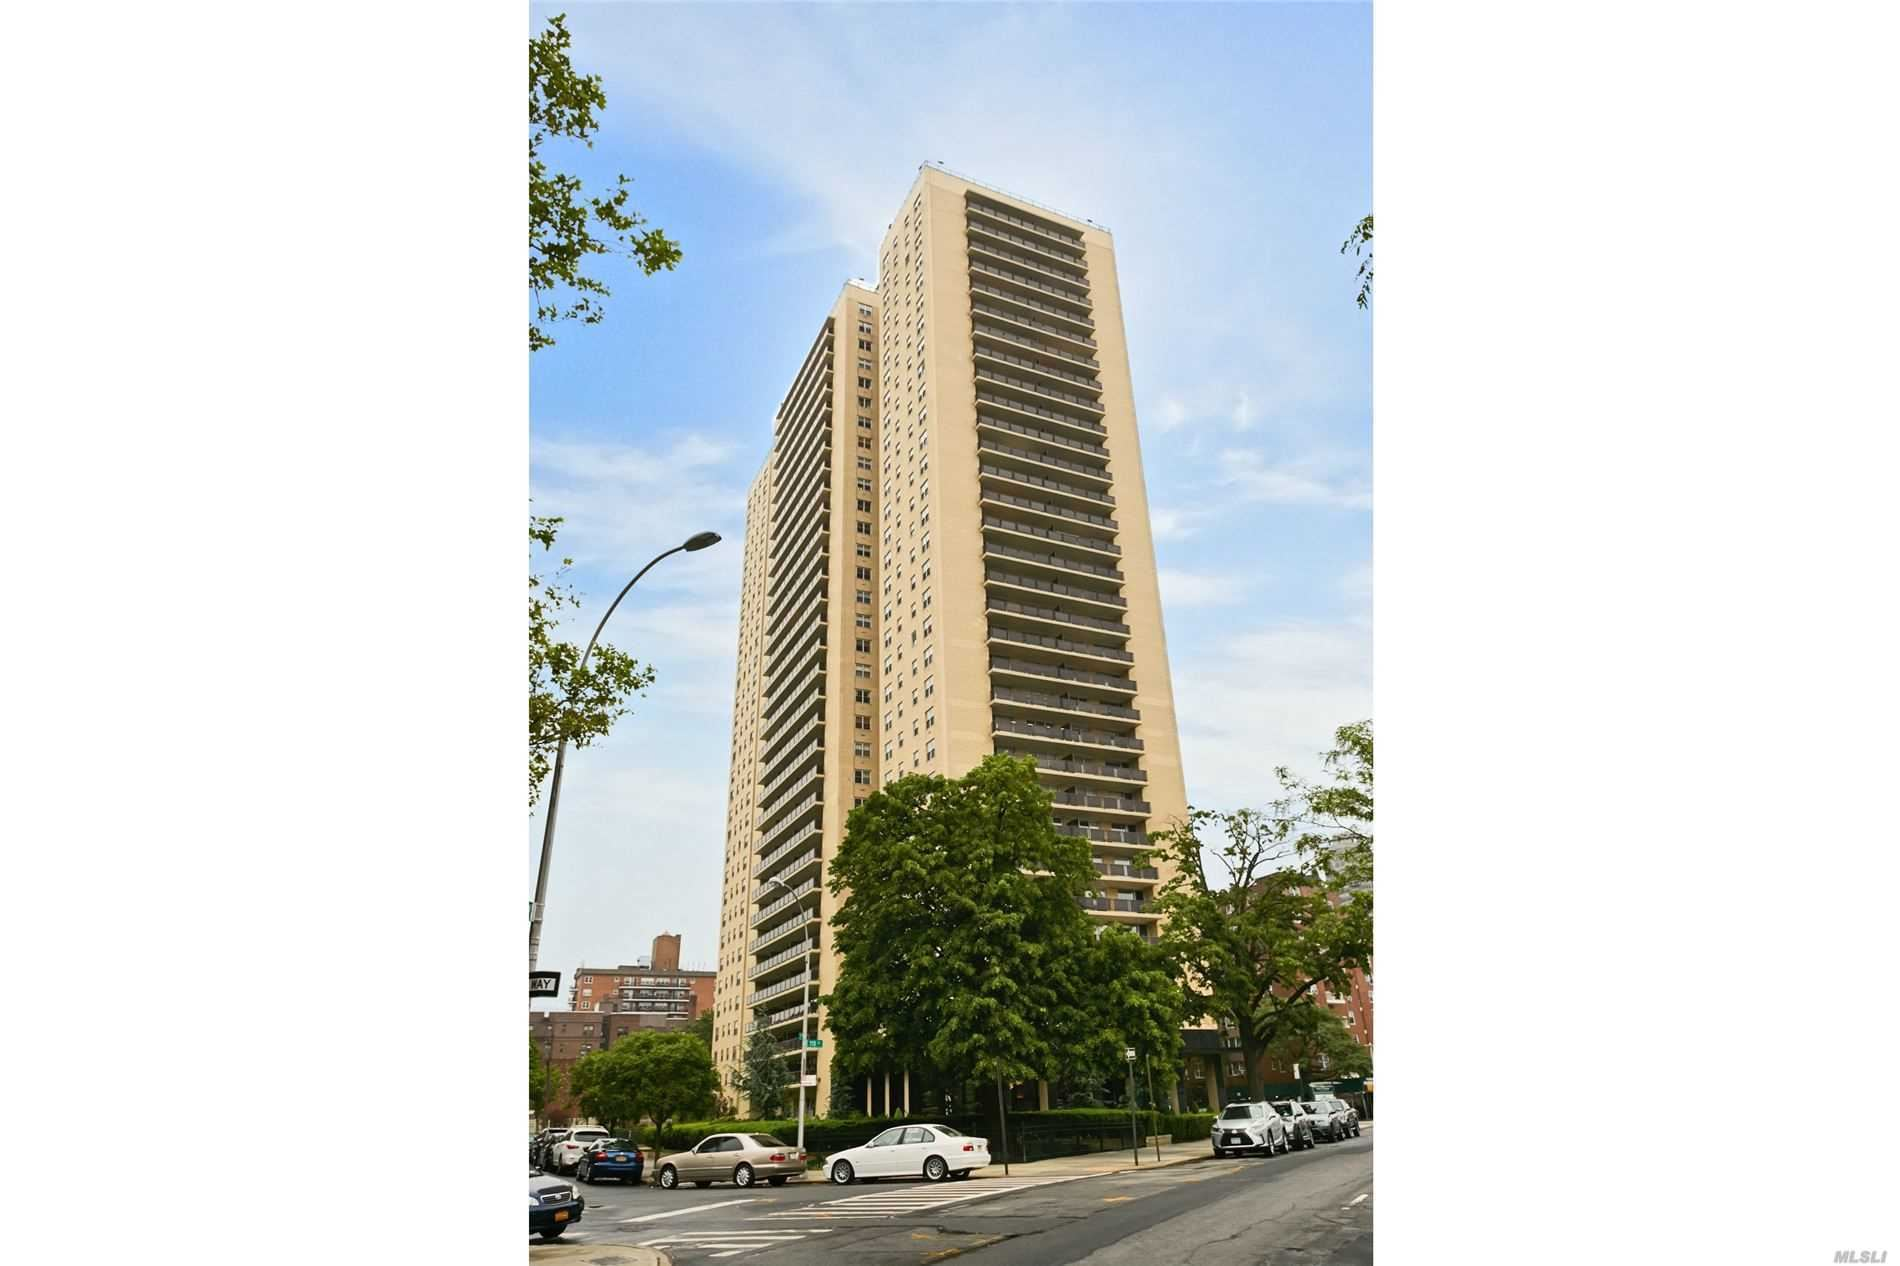 110-11 Queens Boulevard #4G, Forest Hills, NY 11375 - MLS#: 3235975